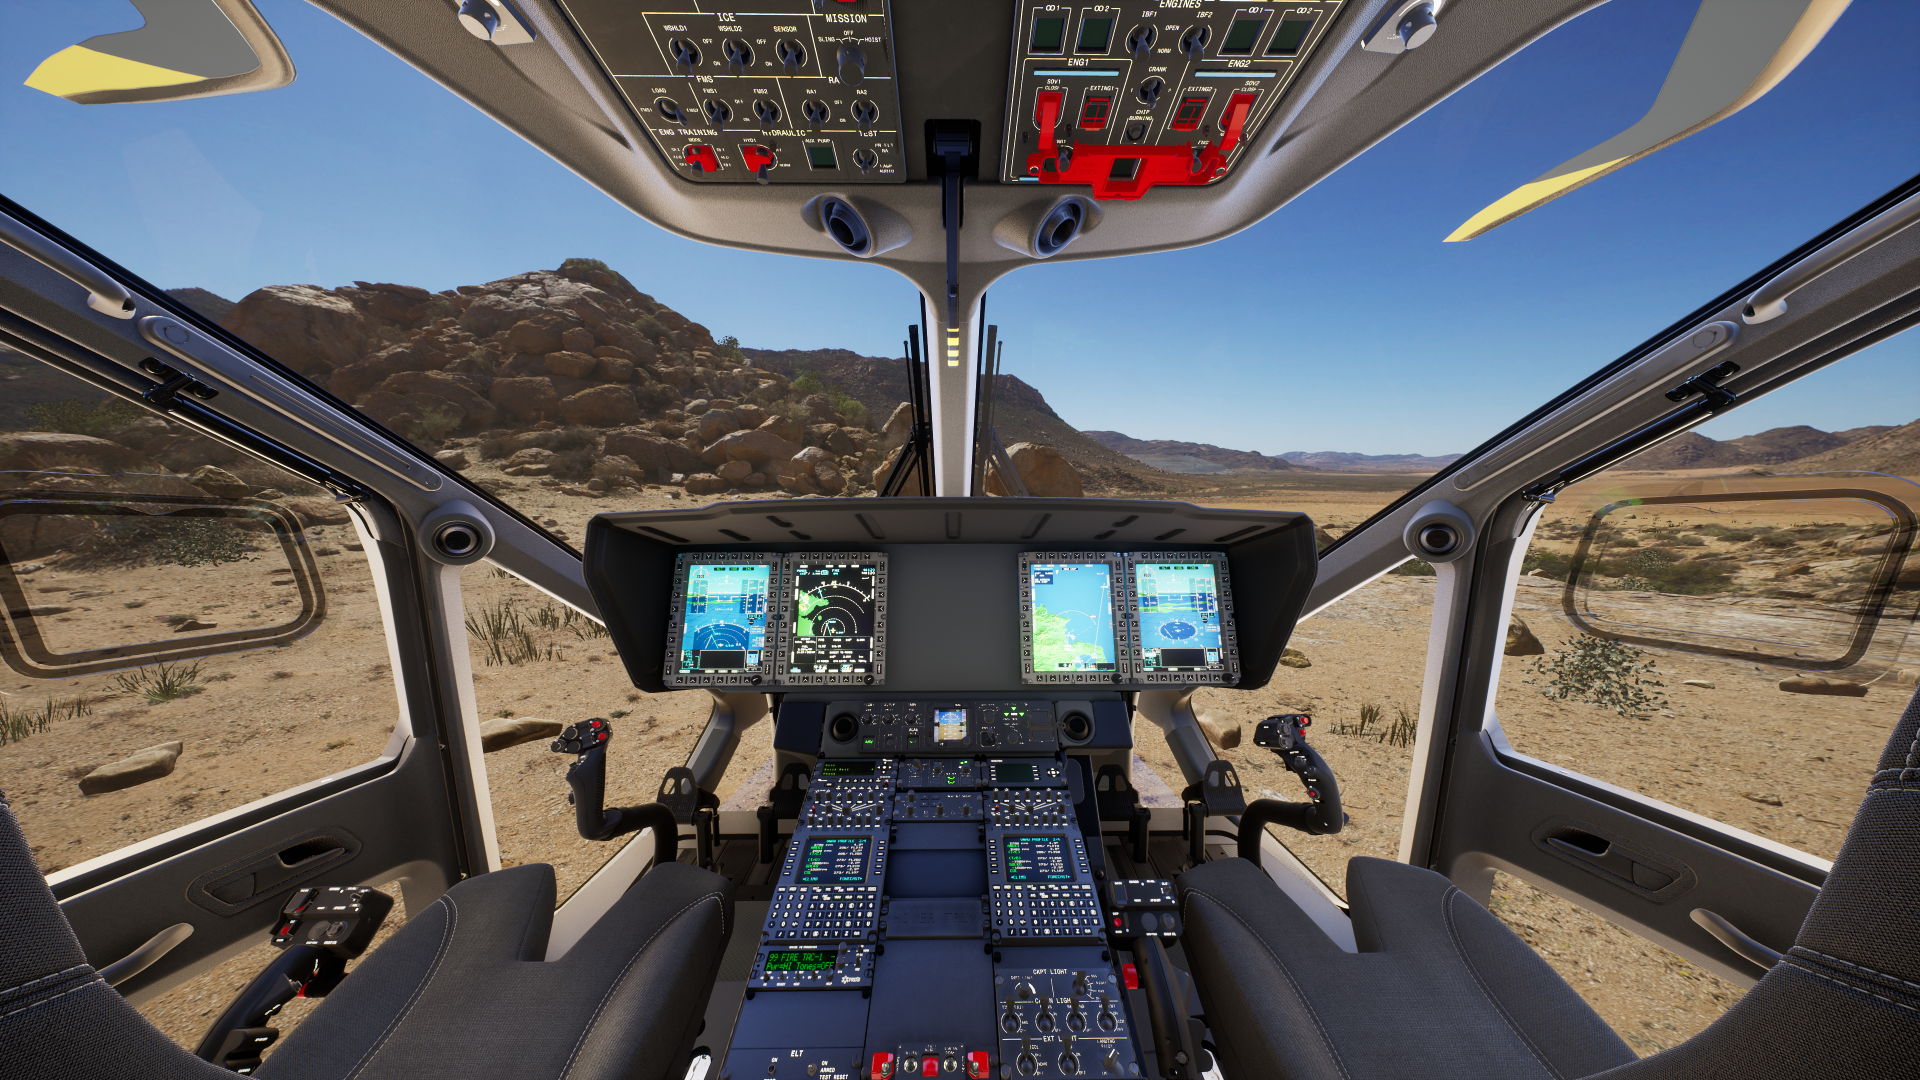 Helionix is an avionics system designed by Airbus Helicopters to offer increased mission flexibility to operators and to positively impact operational safety.